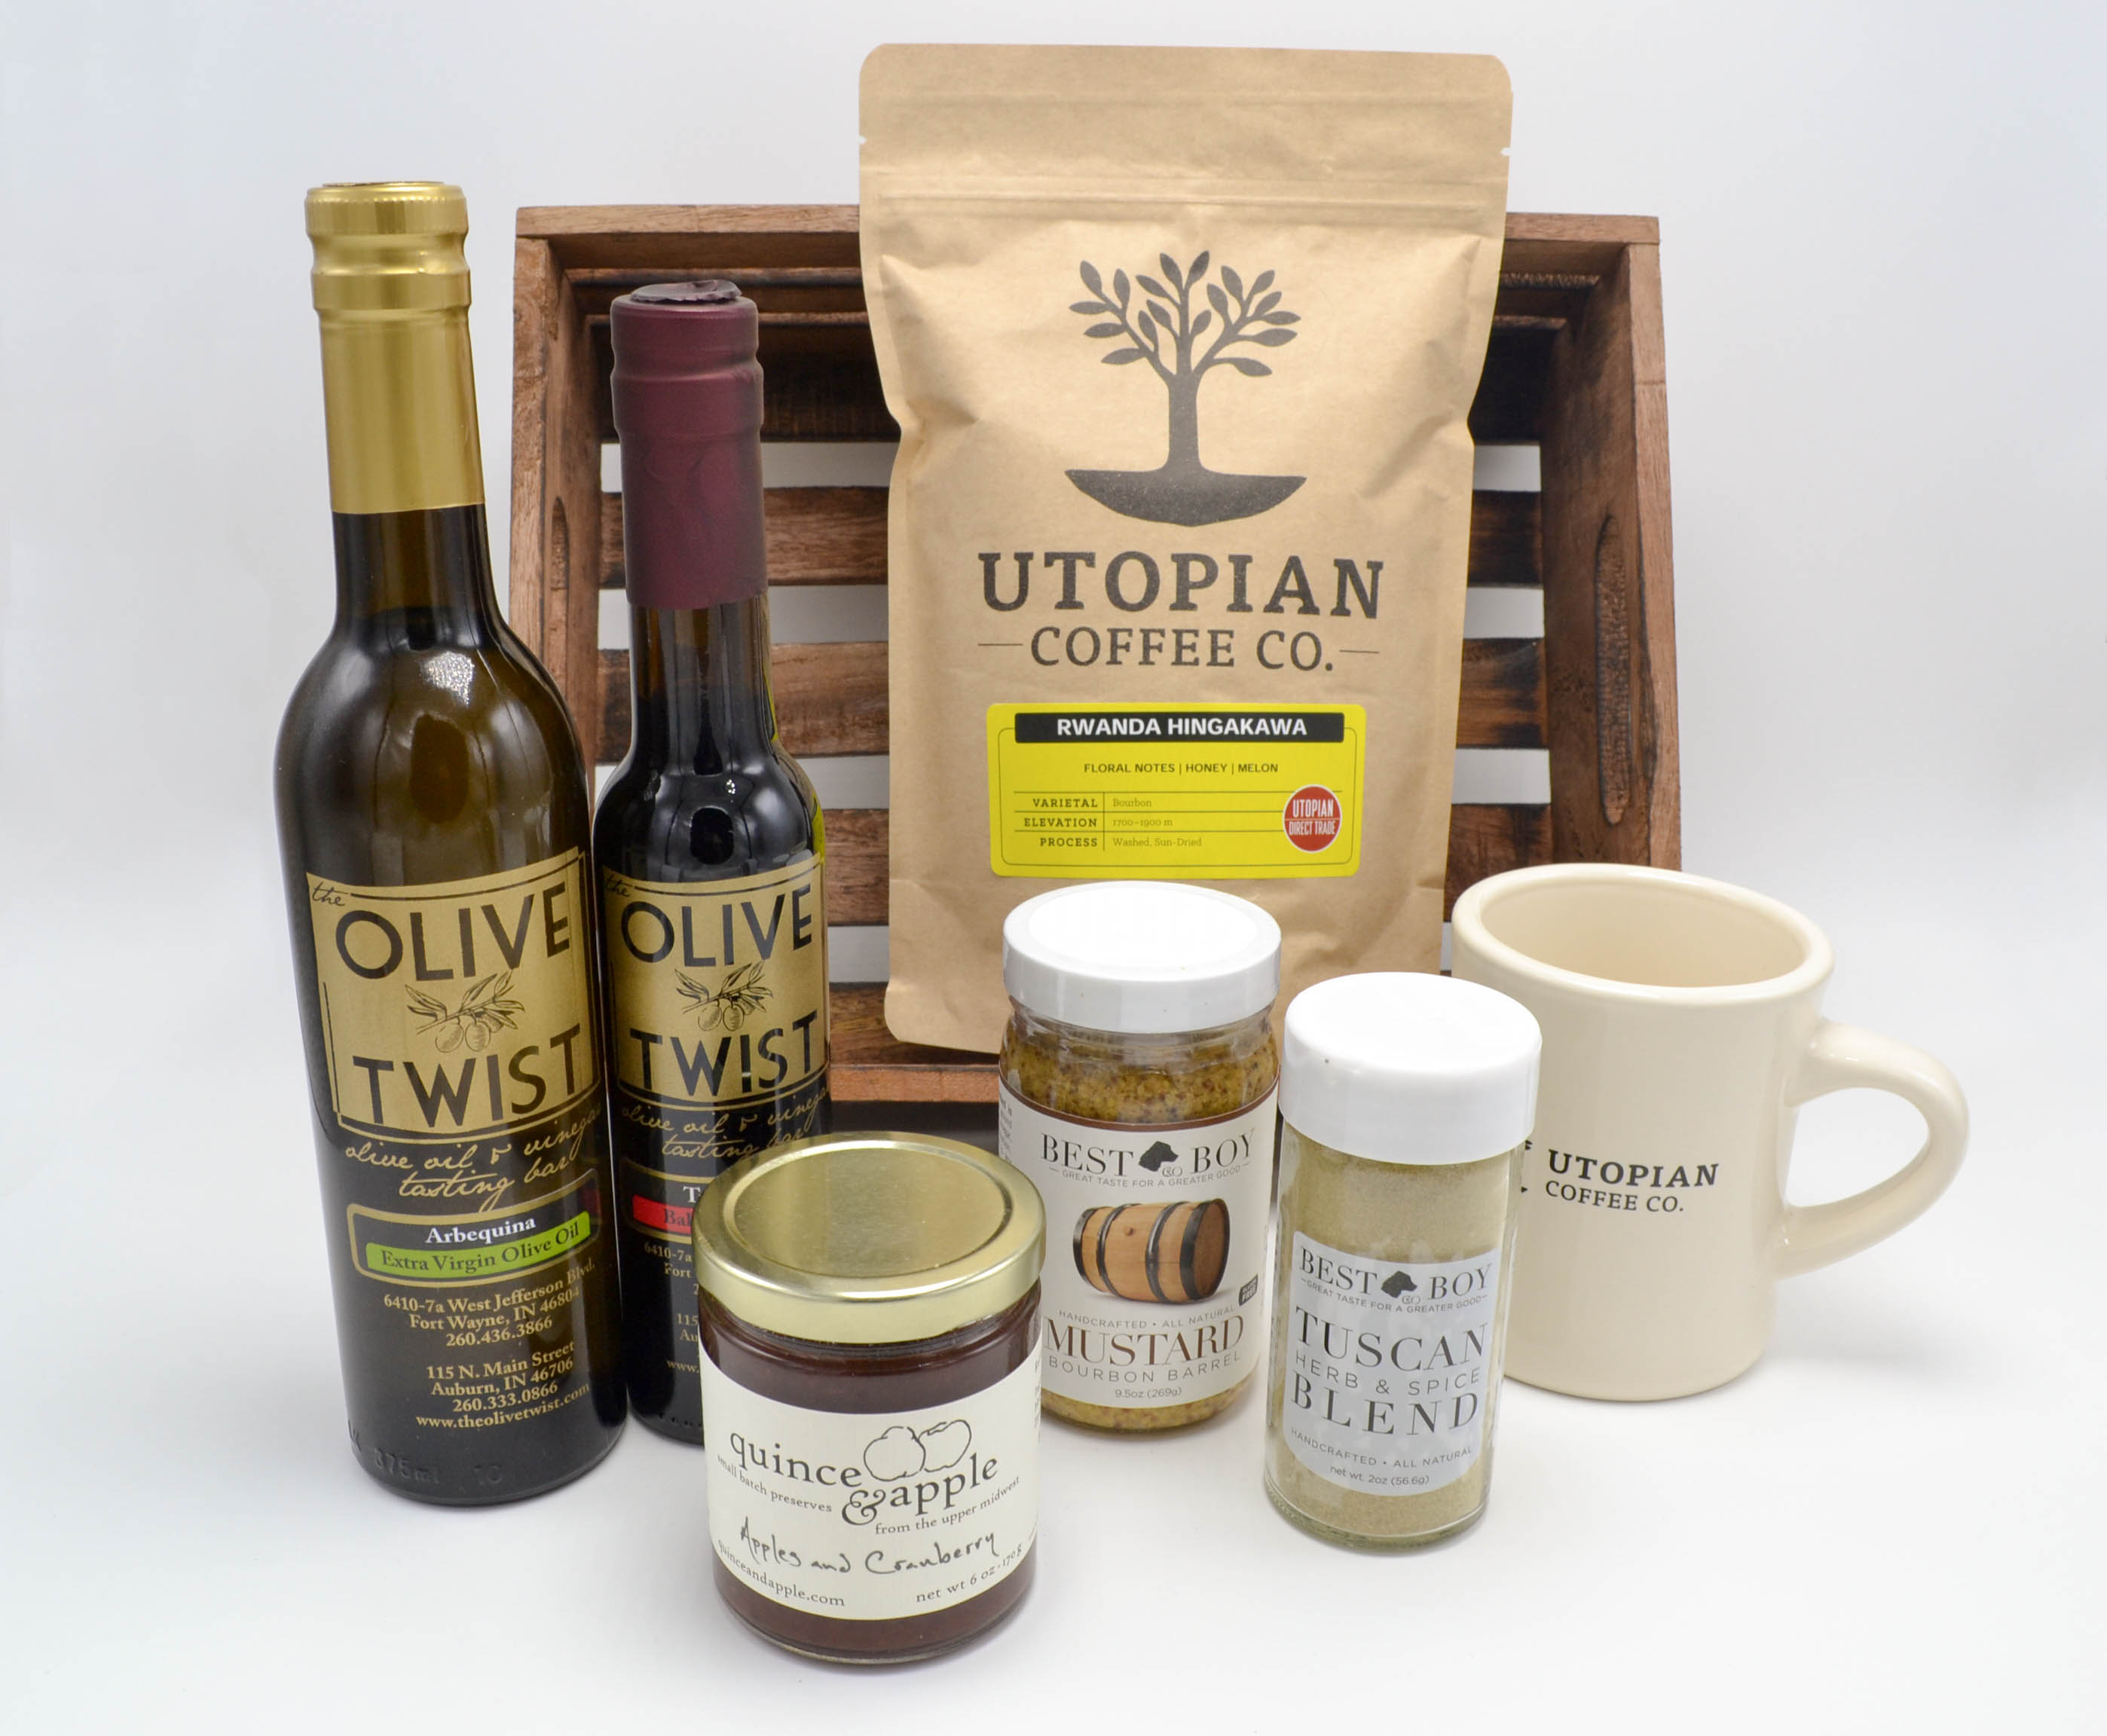 The Epicurean gift. (An example of a custom-curated gift.)